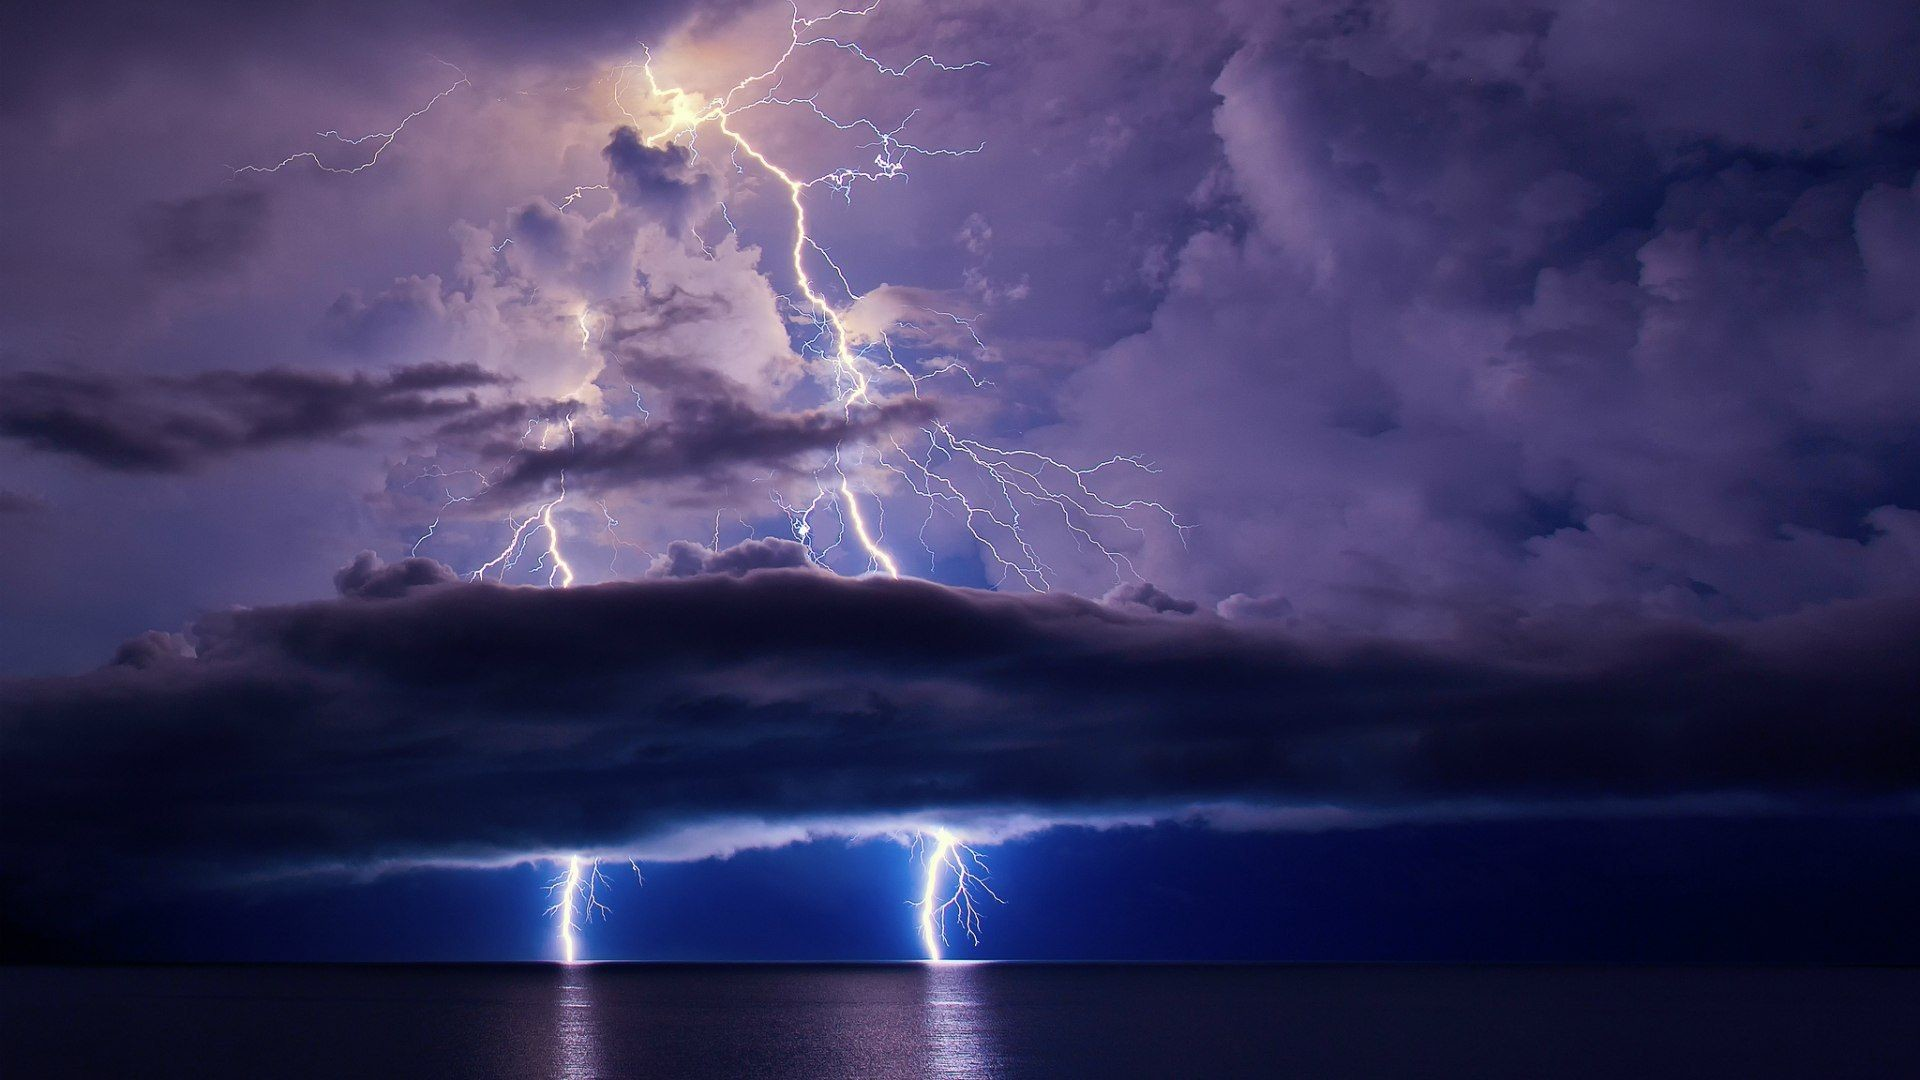 Lightning during a thunderstorm wallpapers and images – wallpapers .